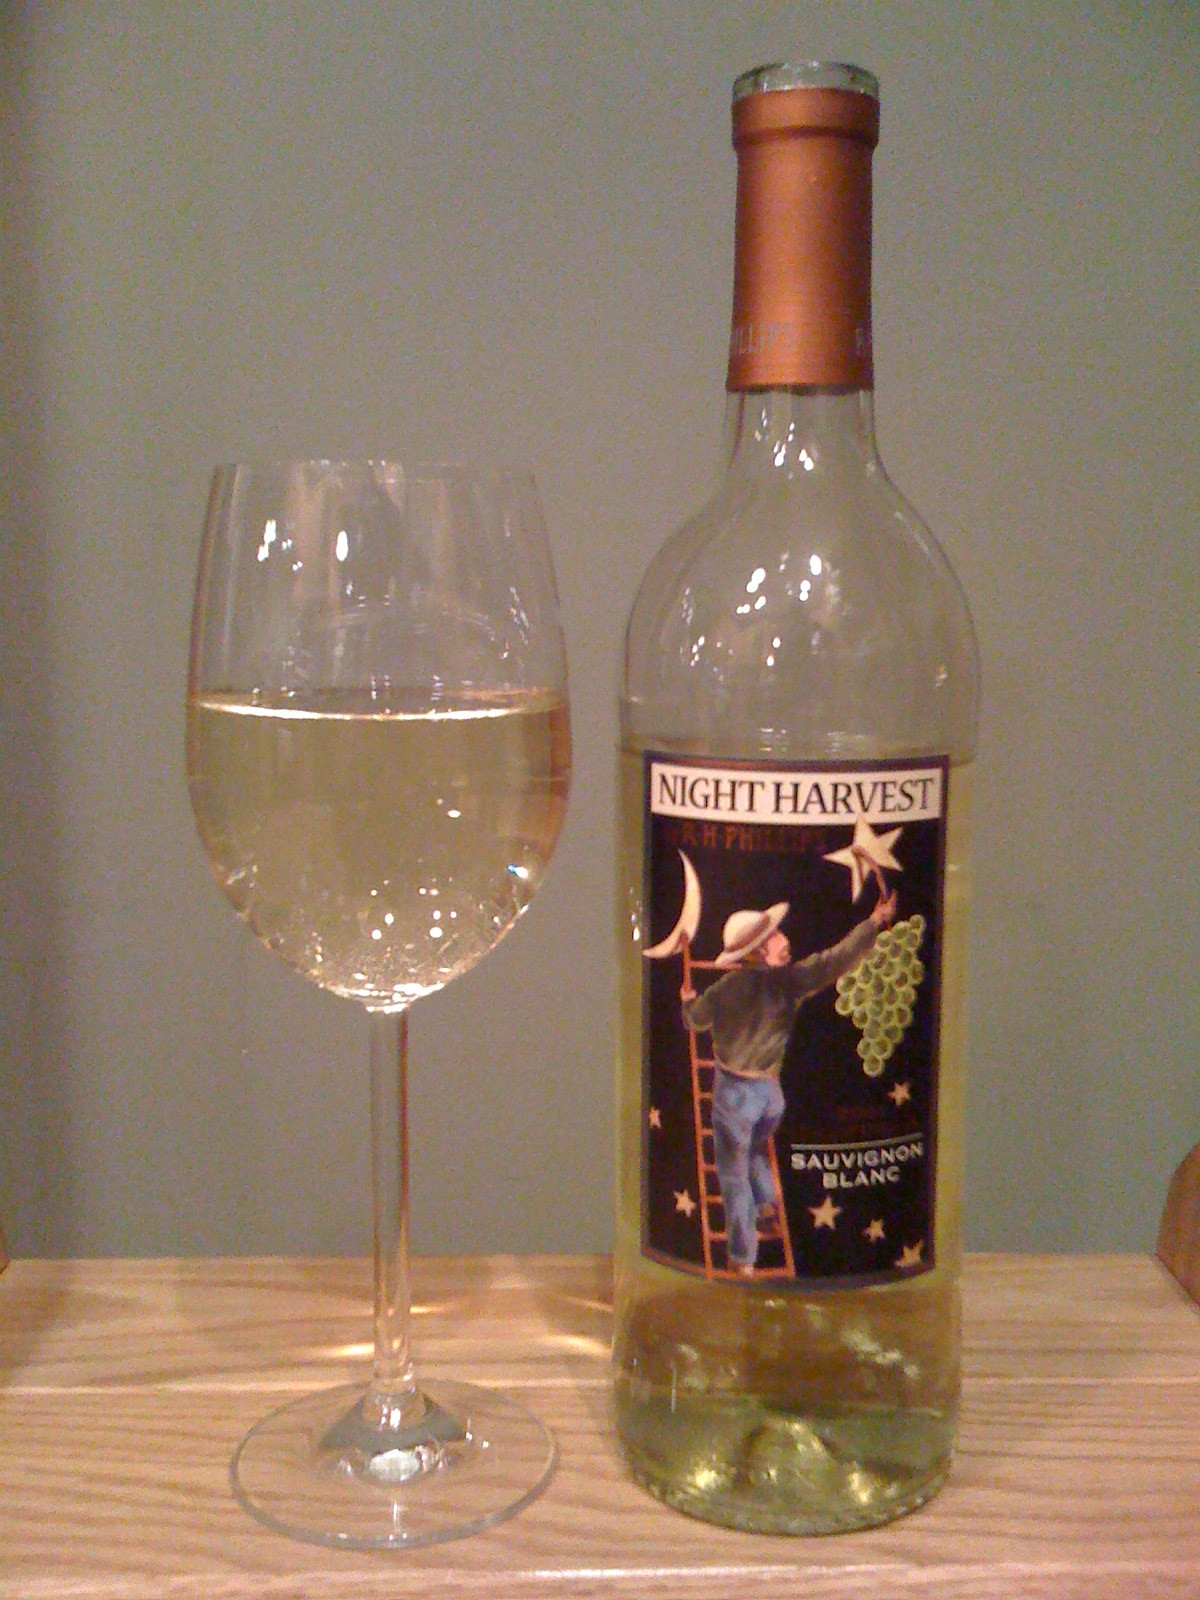 R.H. Phillips Night Harvest Sauvignon Blanc (2006)